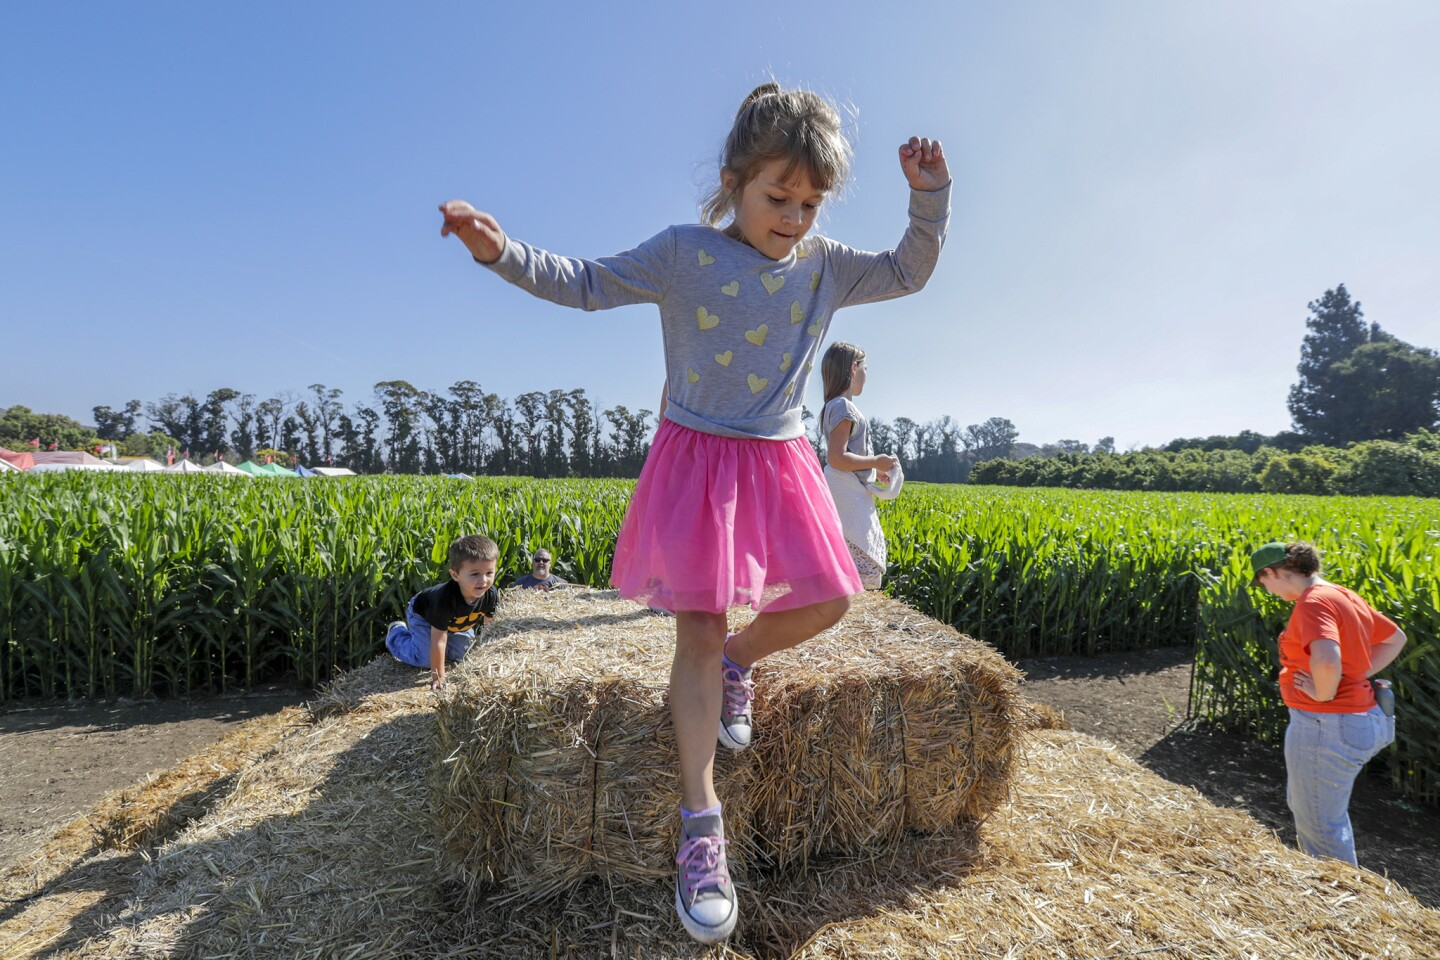 Riece Dinse, 6, plays on hay bales stacked to provide a higher vantage point of a complex maze of corn stalks at Underwood Family Farms in Moorpark.